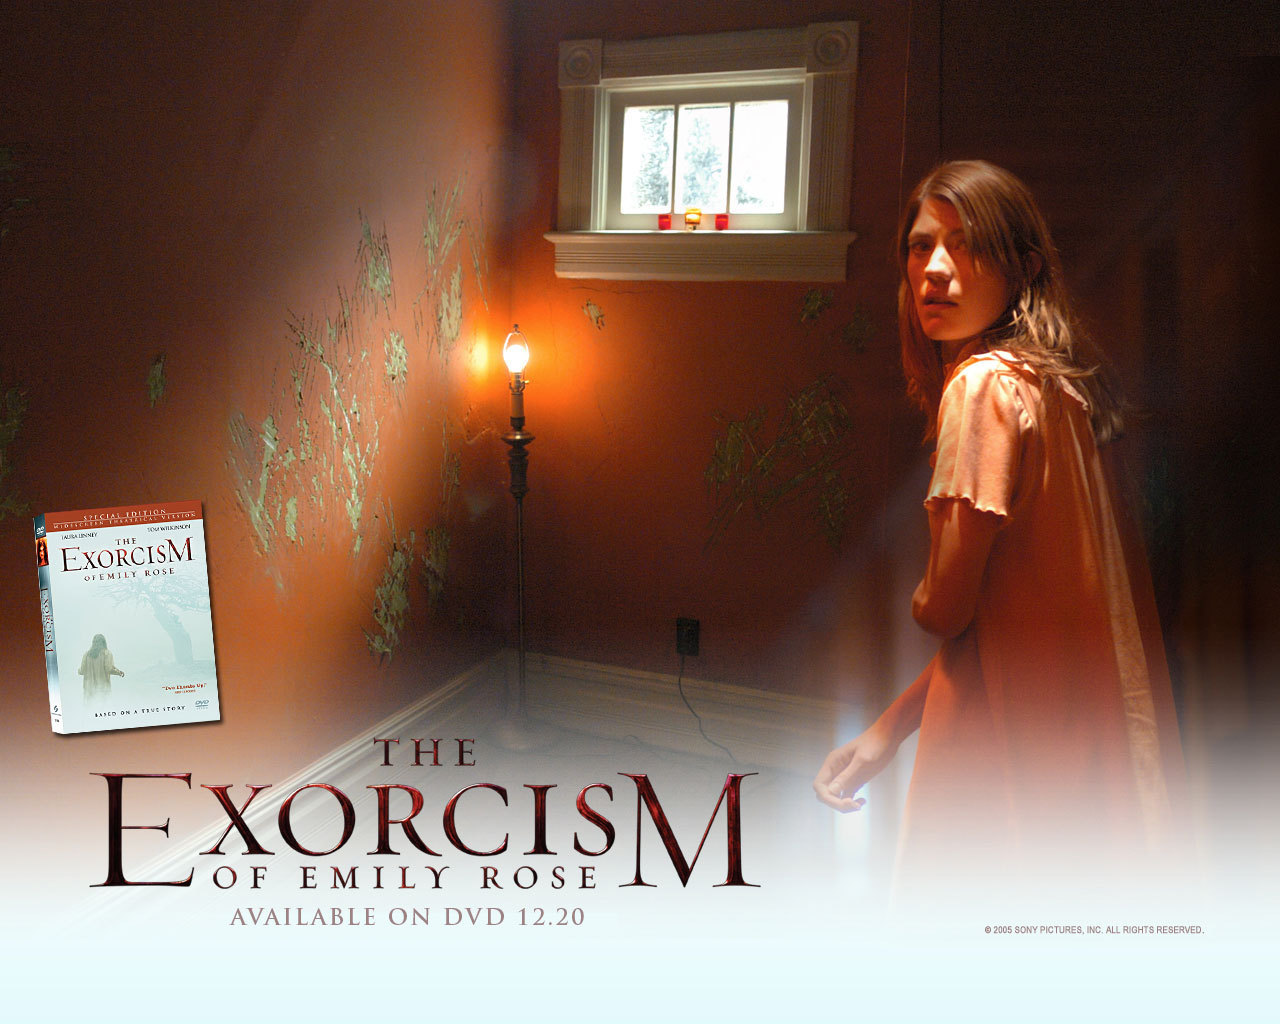 30 Horror Movies Based On Real Life - The Exorcism Of Emily Rose